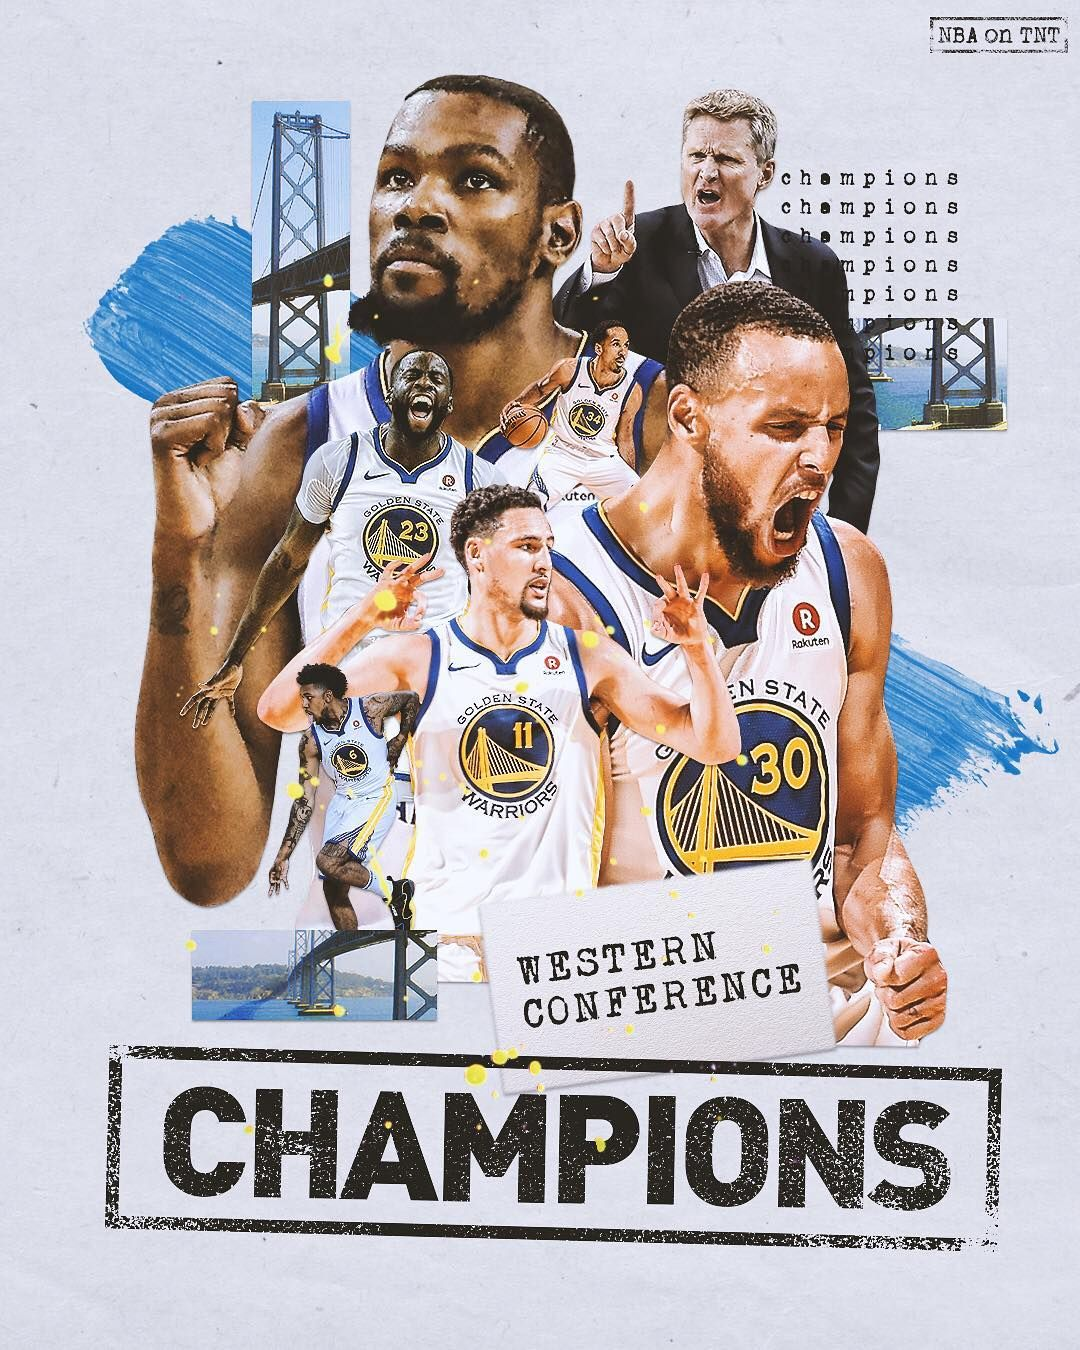 The Best In The West Warriors Are Headed To The Nbafinals For The Fourth Straight Year Golden State Warriors Basketball Nba Sports Graphics